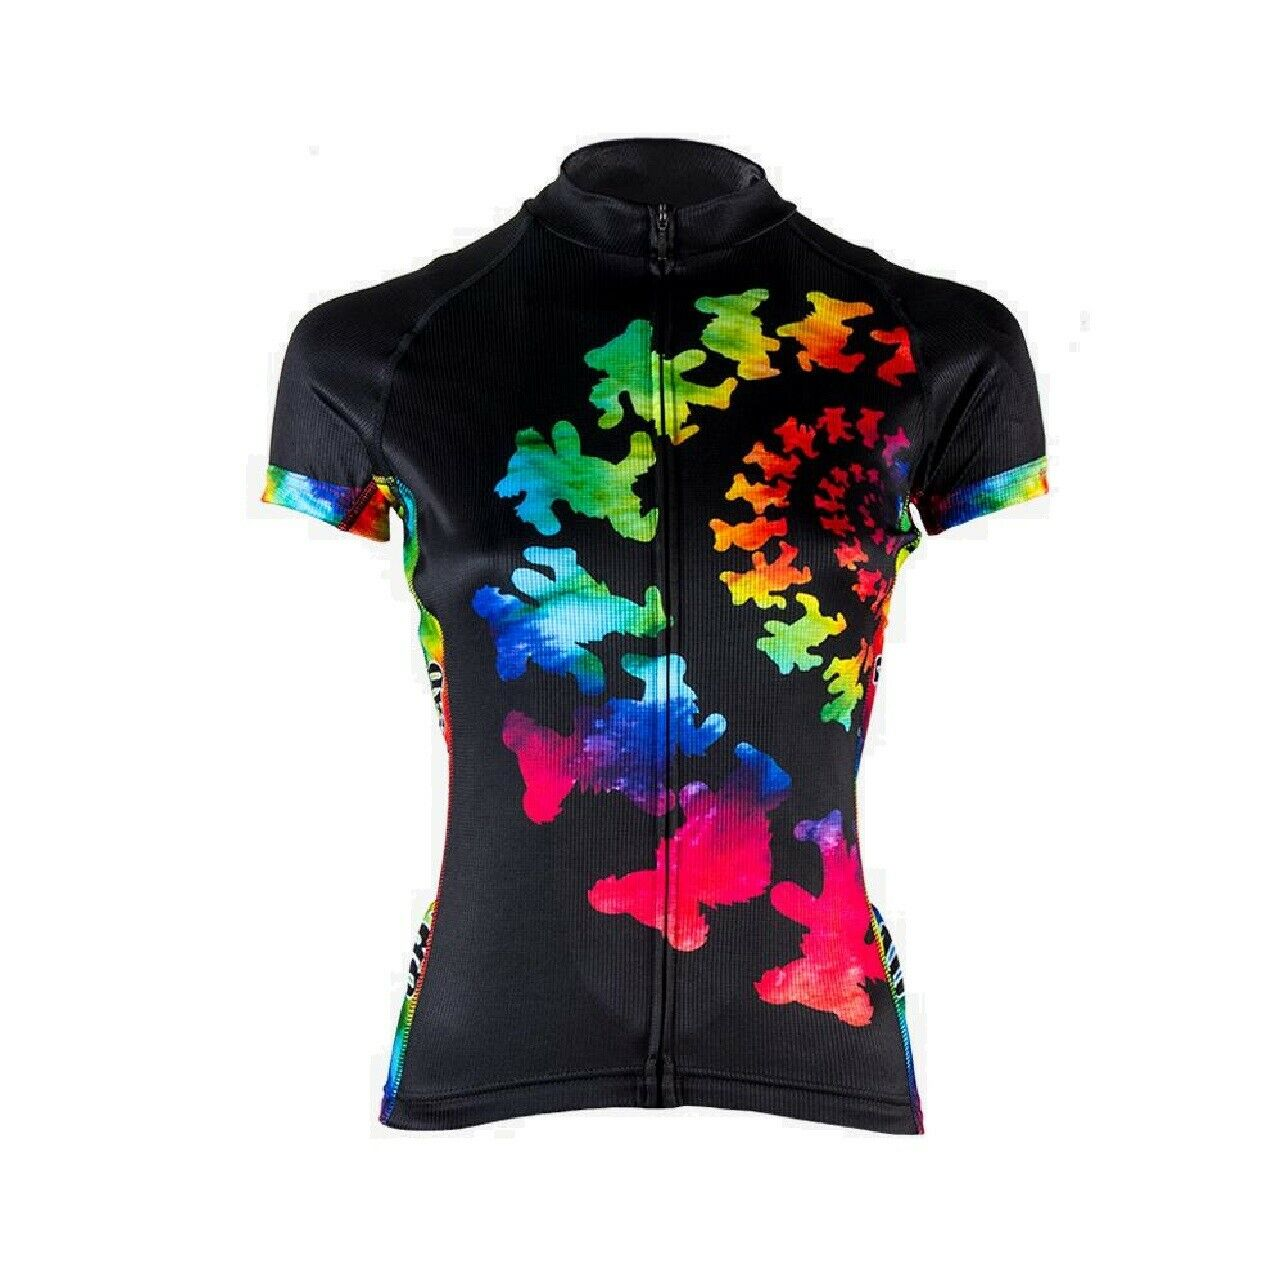 Primal Wear Grateful Dead purple Women's Full Zip Evo Cycling Jersey